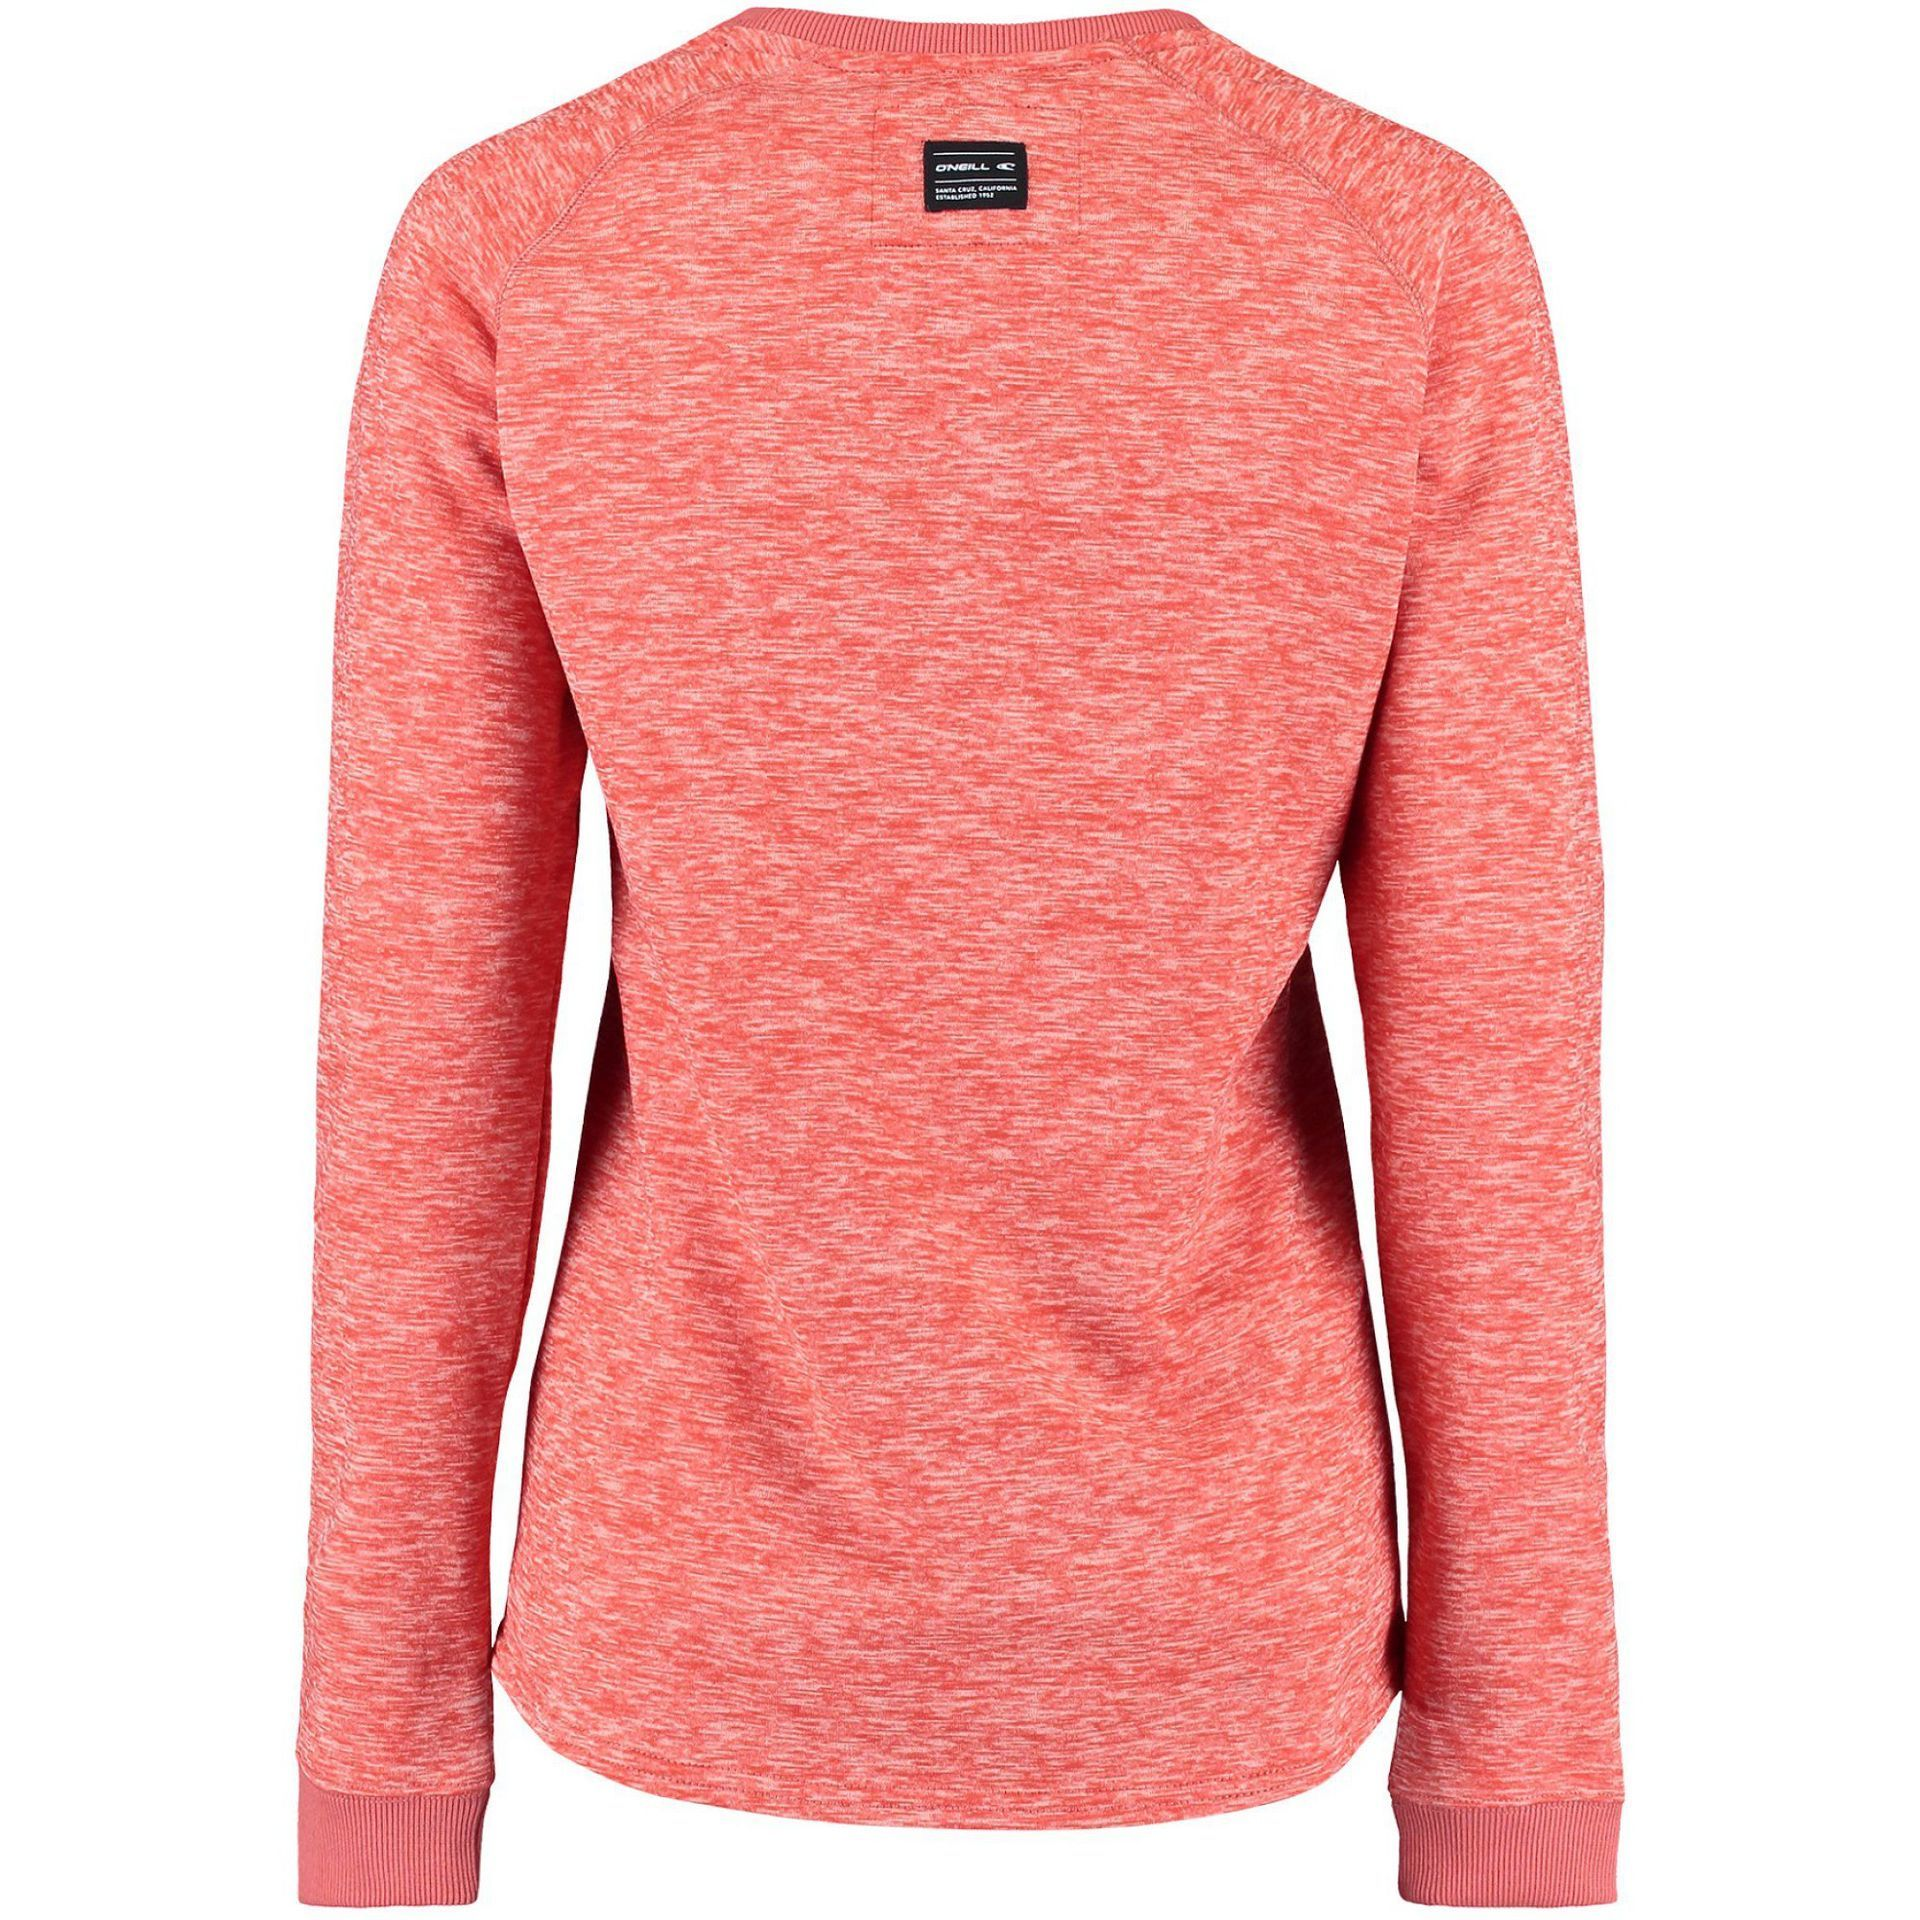 BLUZA ONEILL OVAL FLEECE BURNT SIENNA TYŁ